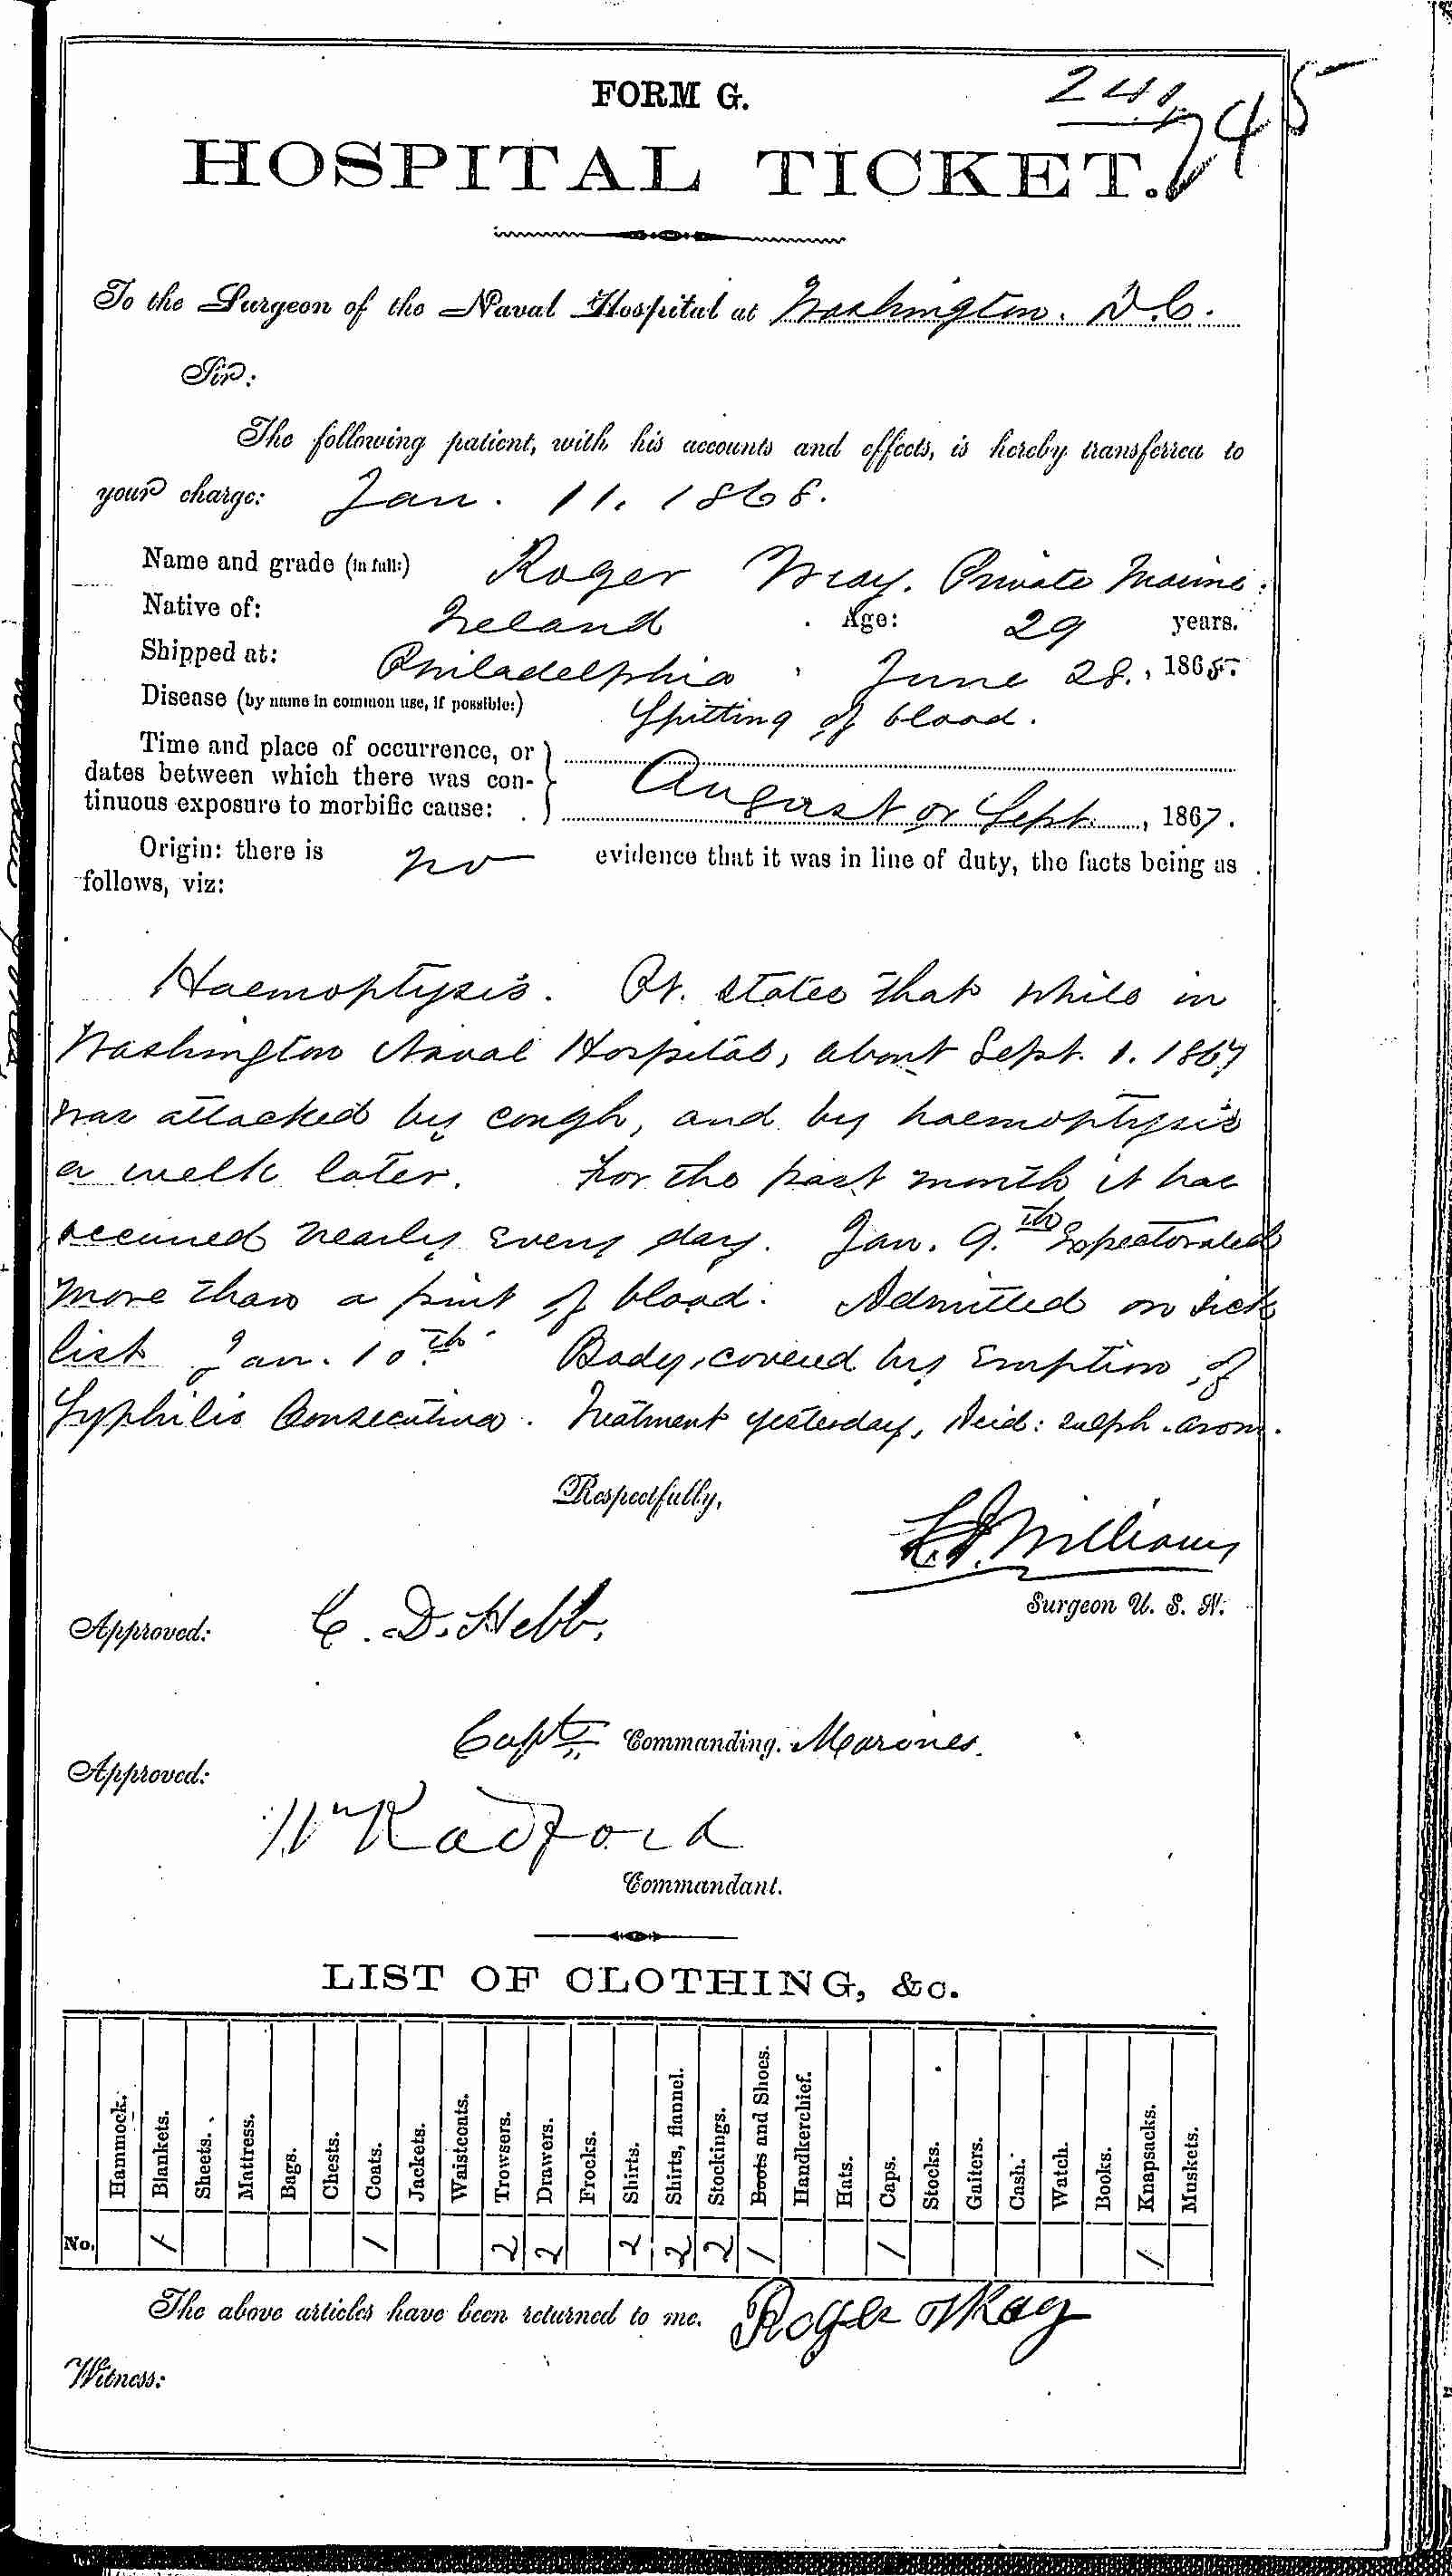 Entry for Rogers Wray (second admission page 1 of 2) in the log Hospital Tickets and Case Papers - Naval Hospital - Washington, D.C. - 1866-68